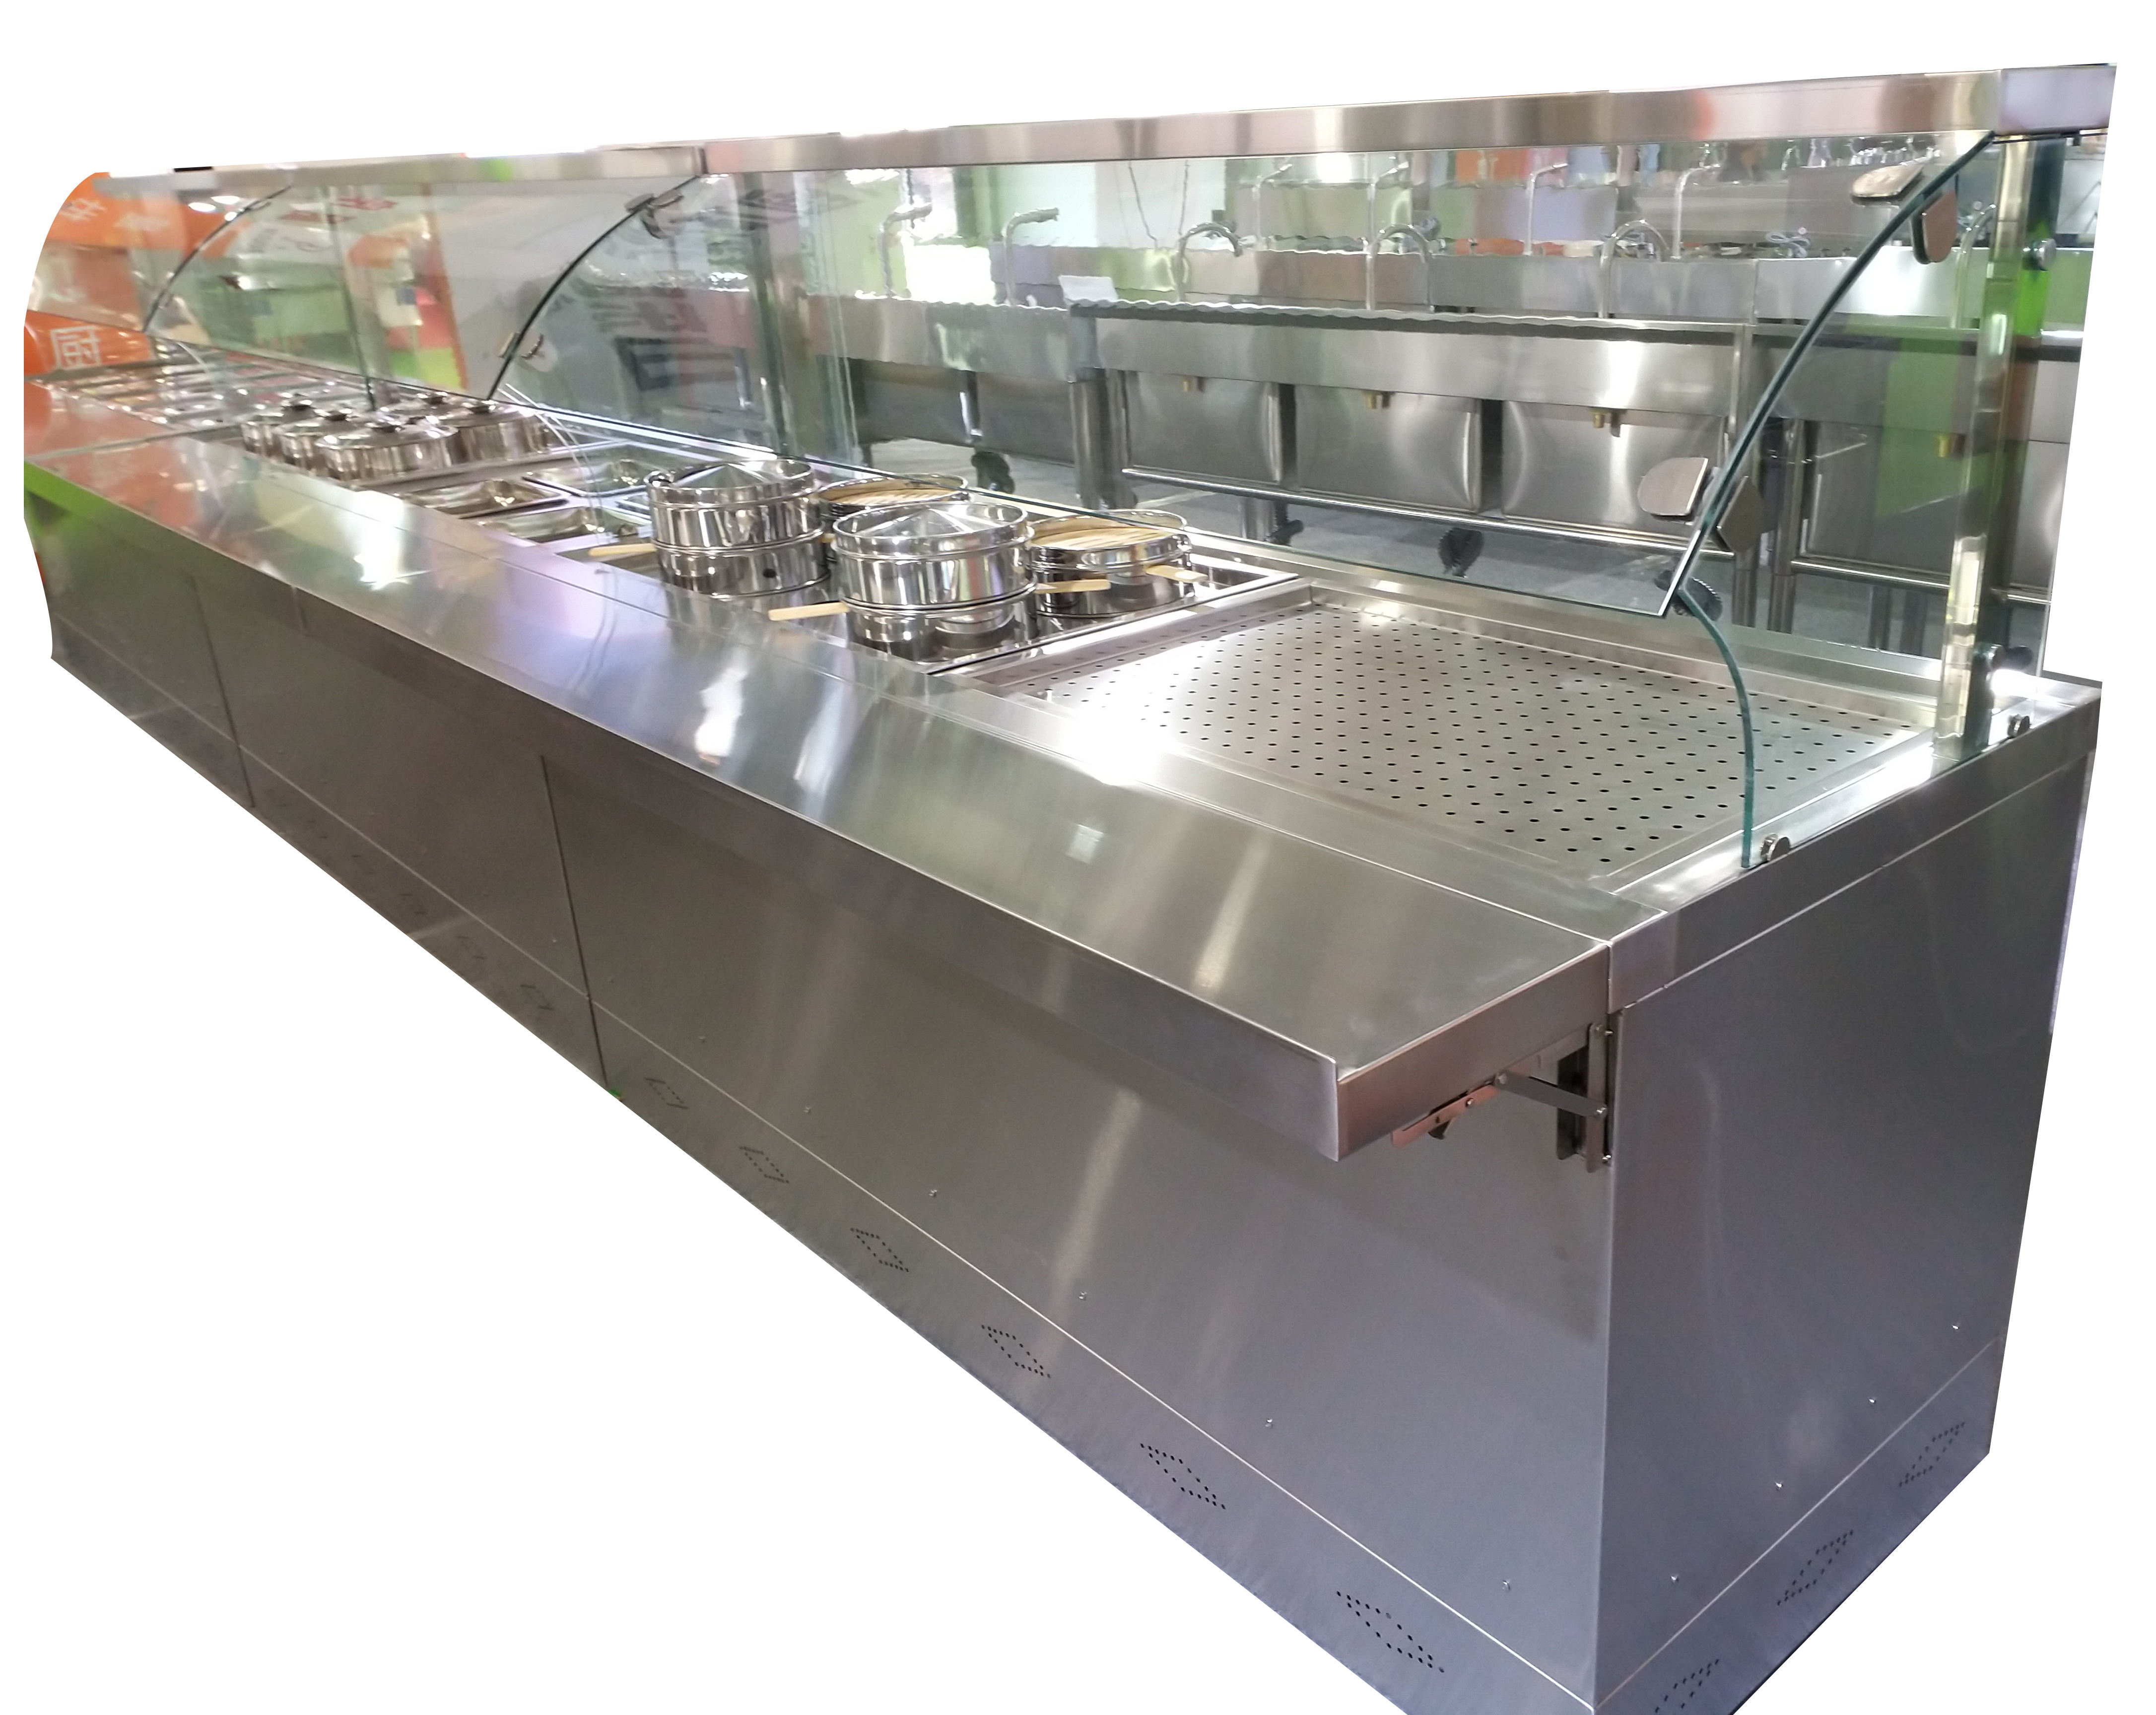 Stainless steel bain marie restaurant buffet food warmer counter with cabinet